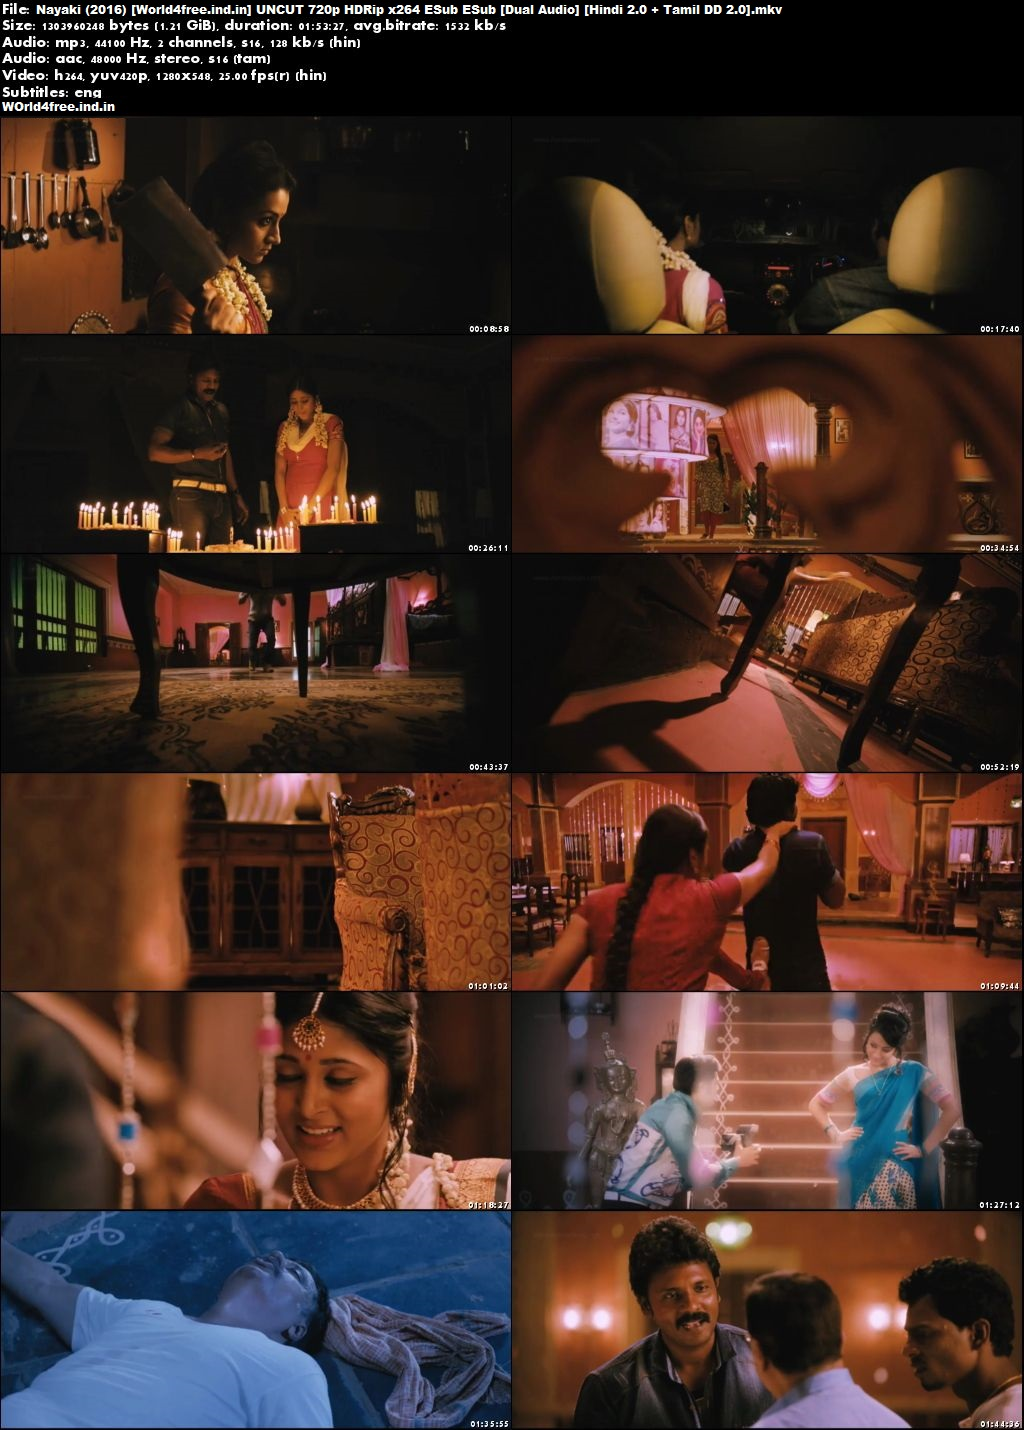 Nayaki 2016 world4free.ind.in Hindi Dubbed Movie HDRip 720p Download Dual Audio